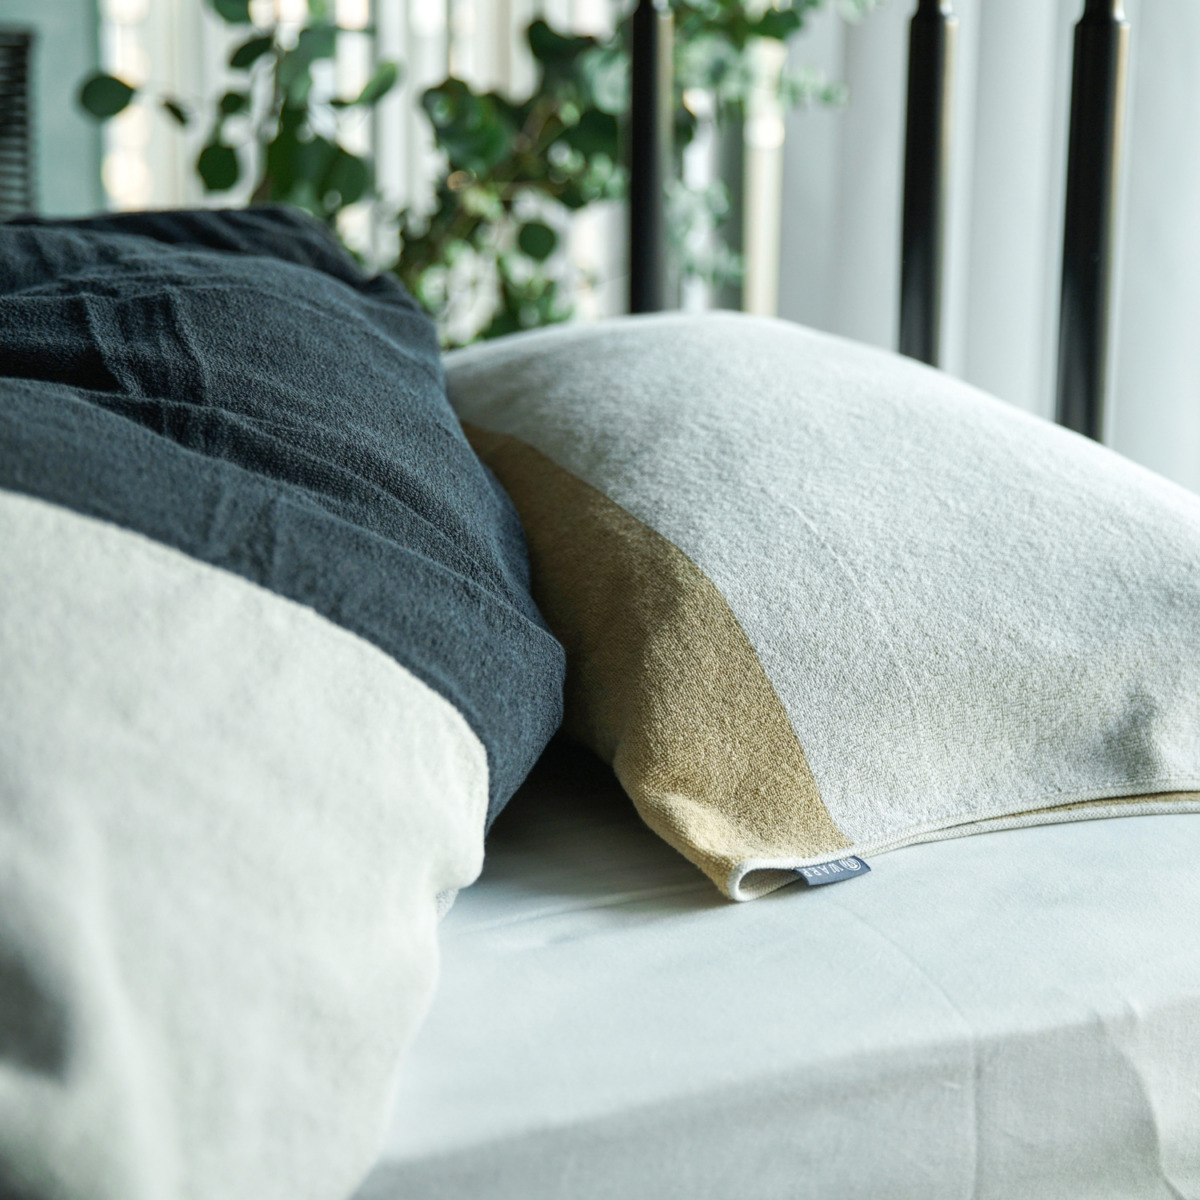 Stretch pillow case